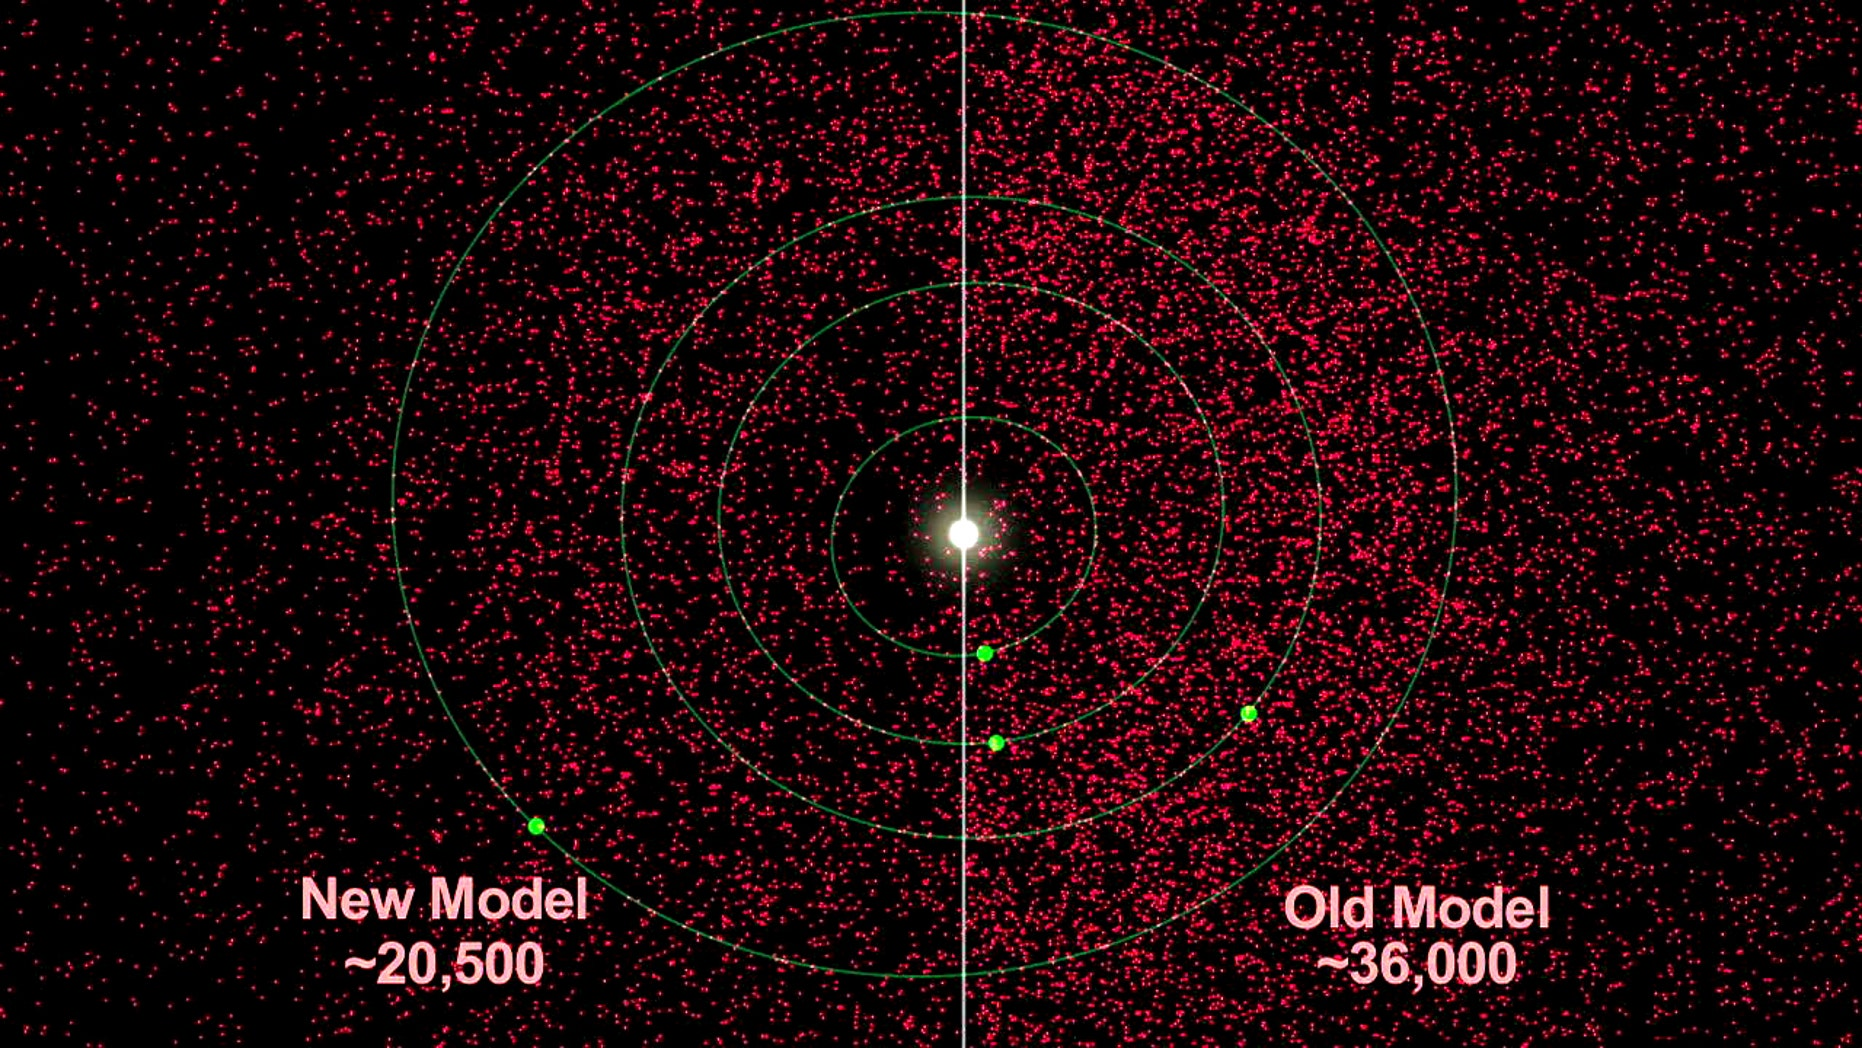 NASA&'s NEOWISE asteroid survey indicates that there are at least 40 percent fewer near-Earth asteroids in total that are larger than 330 feet, or 100 meters. NASA used its WISE infrared space telescope to make the find.